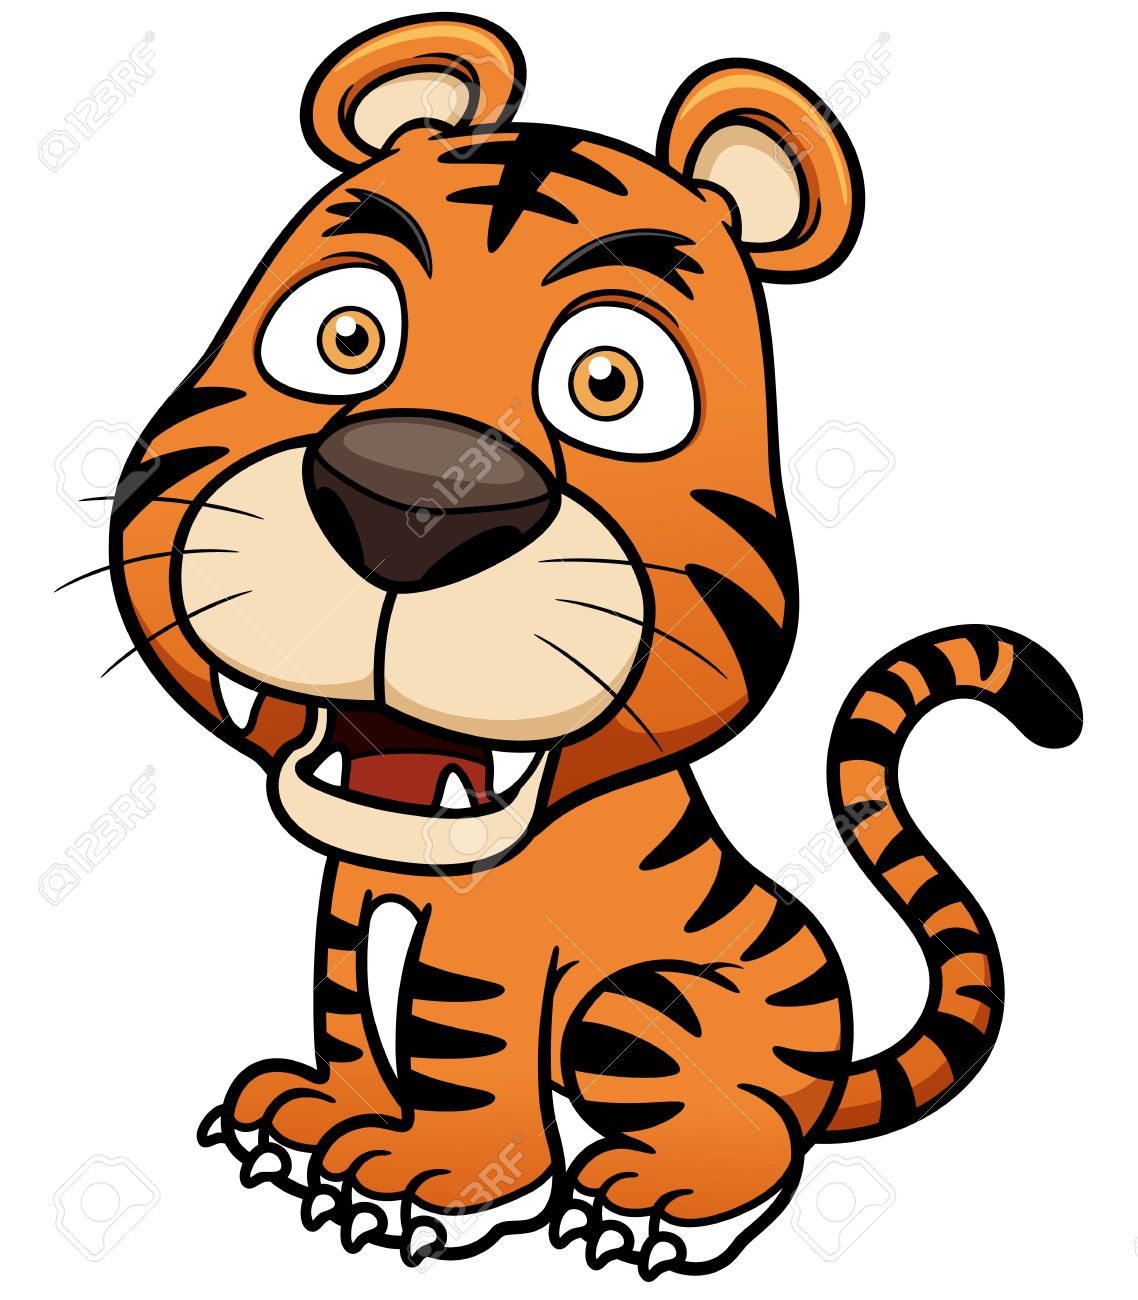 Sumatran Tiger clipart #7, Download drawings